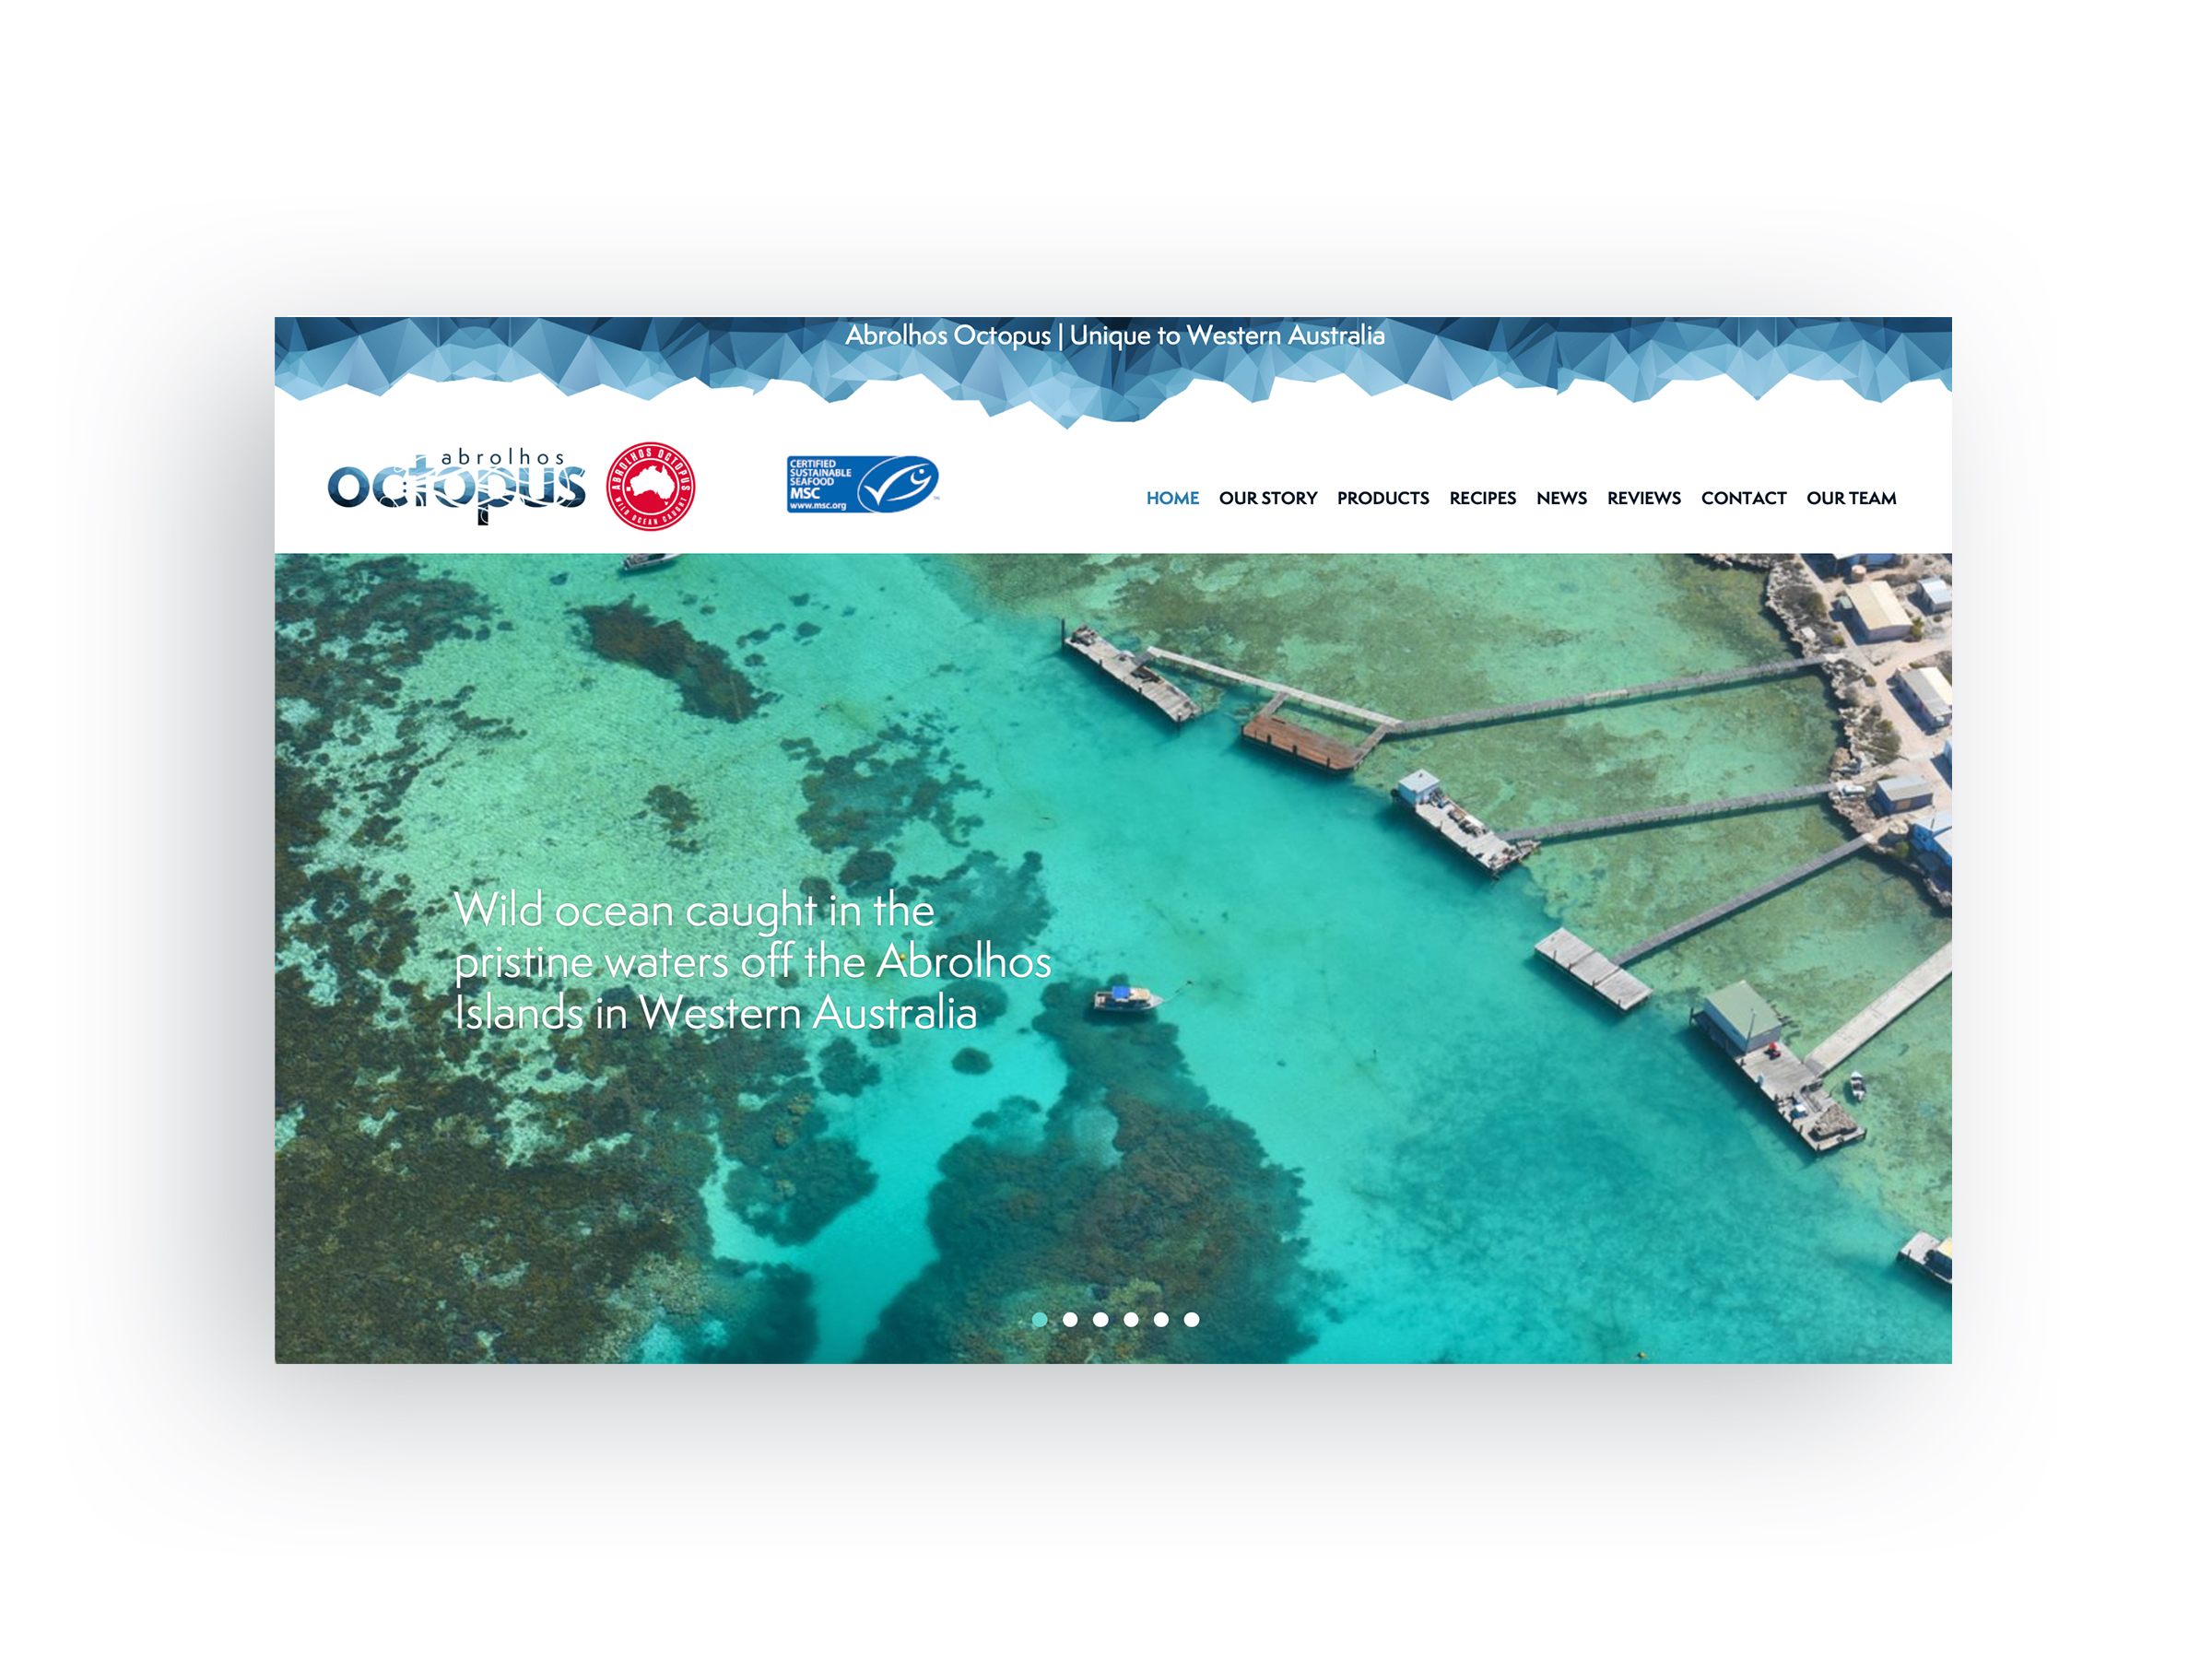 Abrolhos Octopus - Home